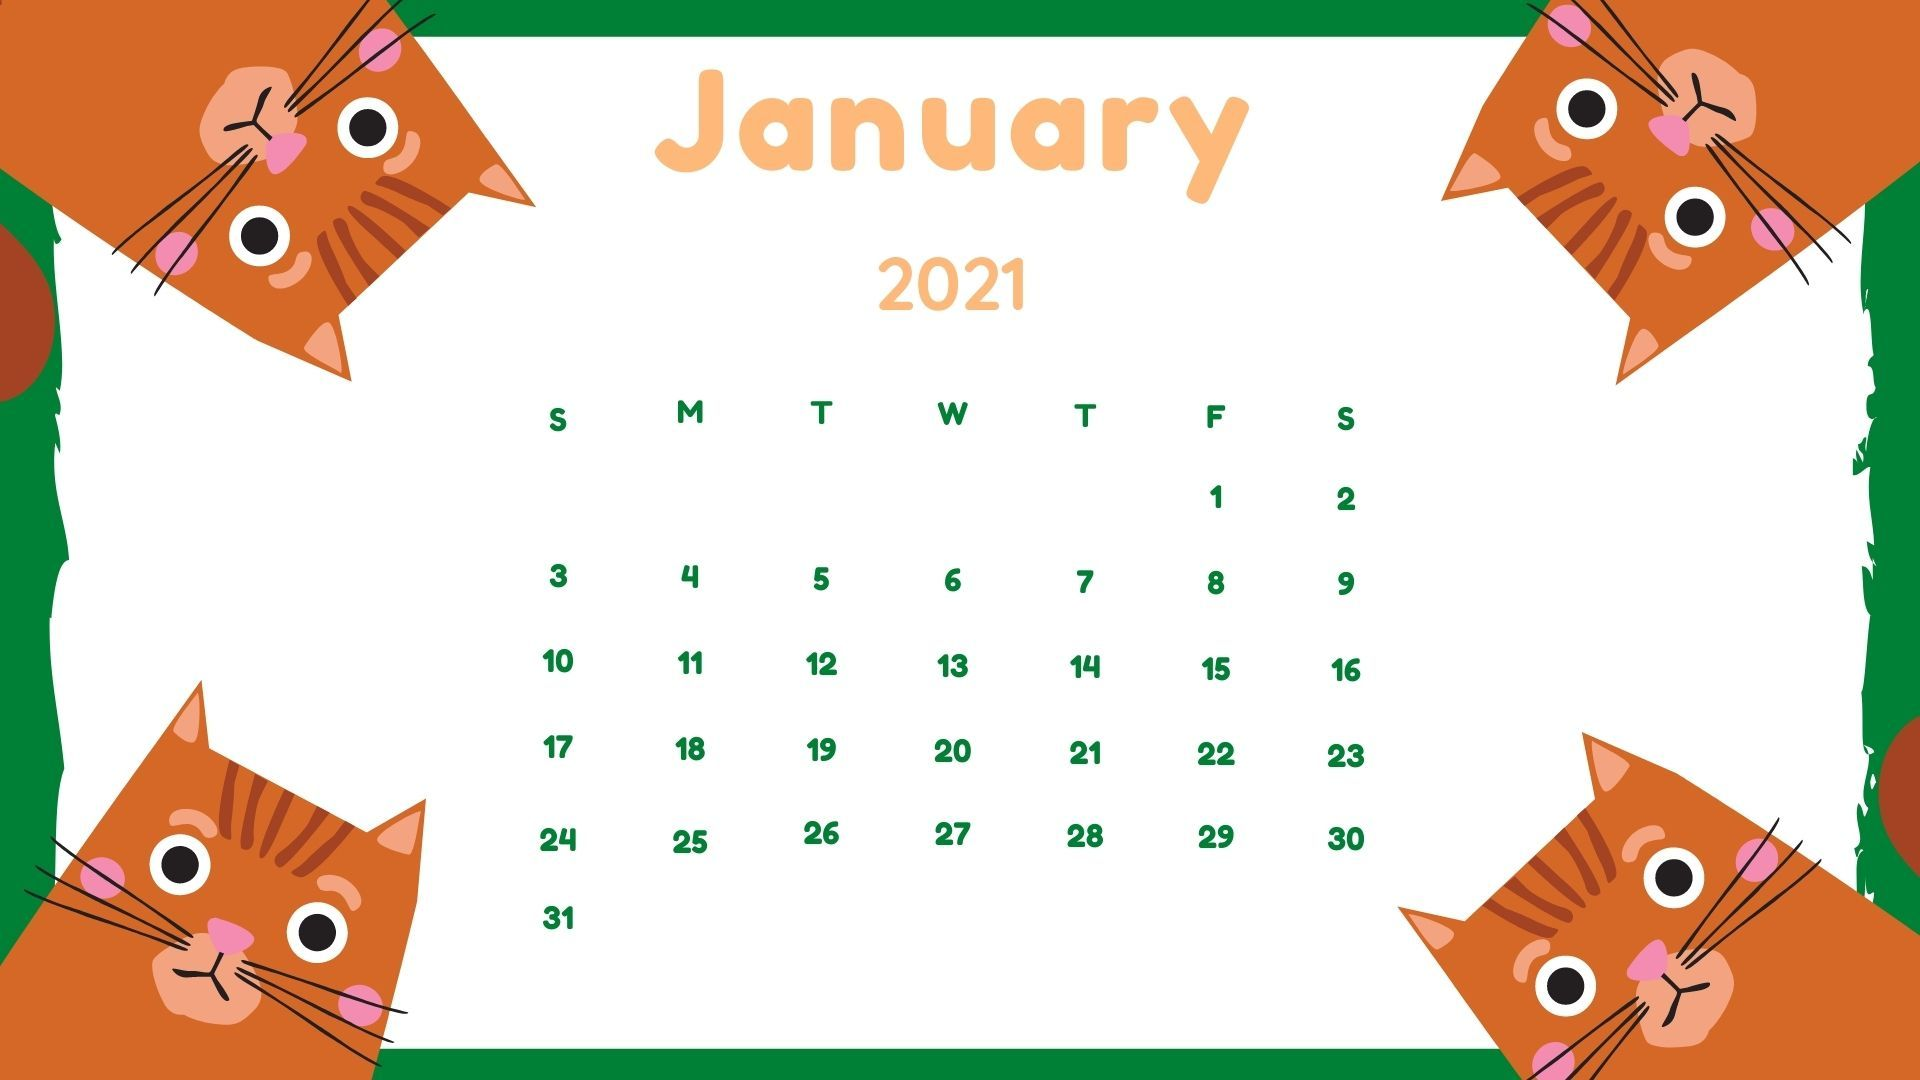 download January 2021 HD calendar wallpaper printable 1920x1080